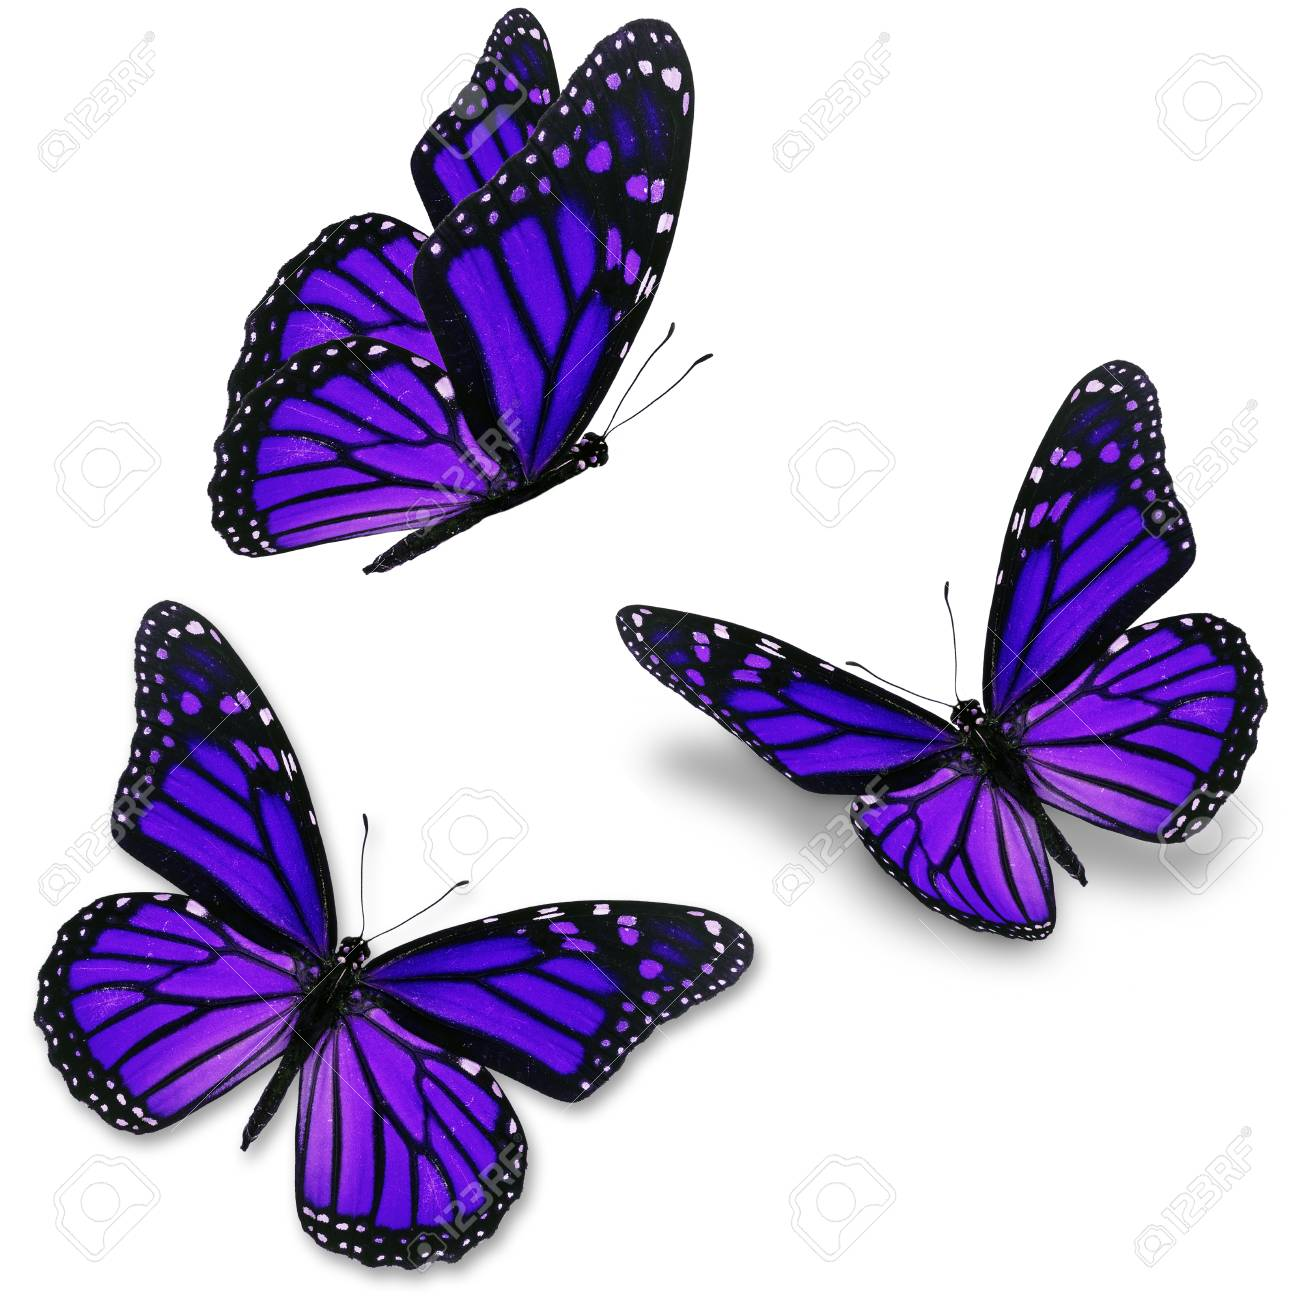 Three purple butterfly, isolated on white background - 36579705